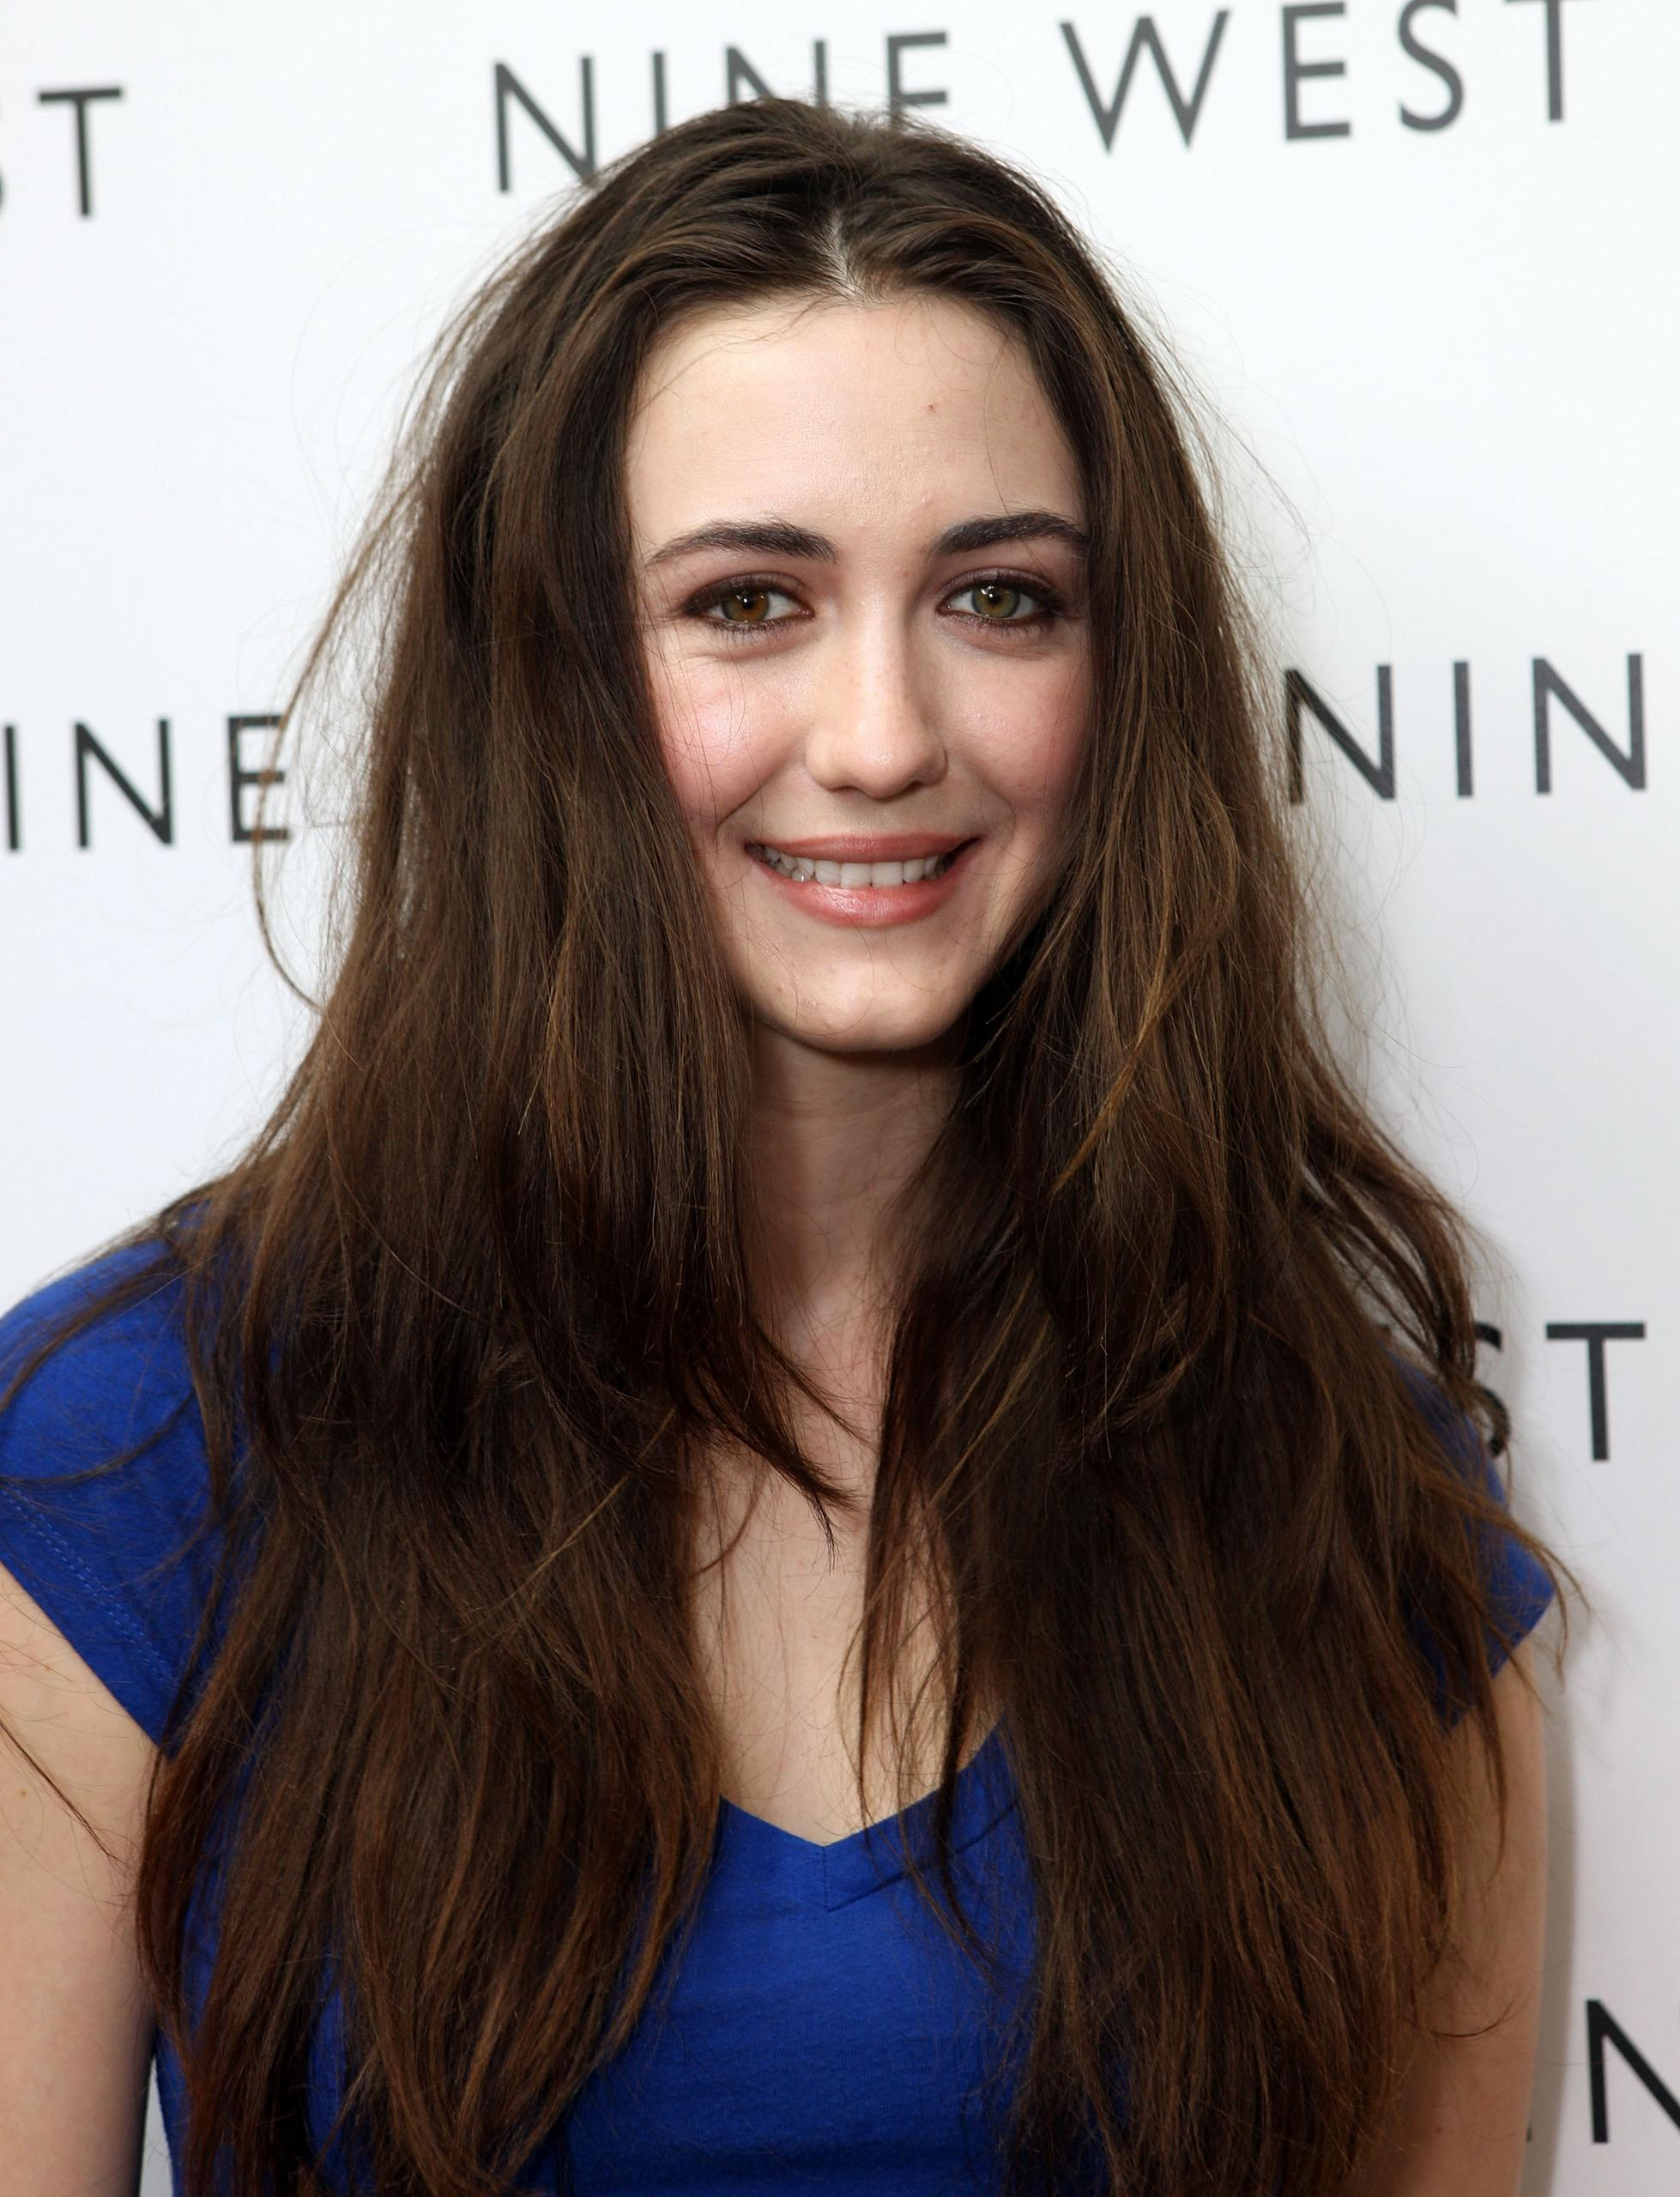 Madeline Zima nude (32 fotos) Cleavage, iCloud, see through